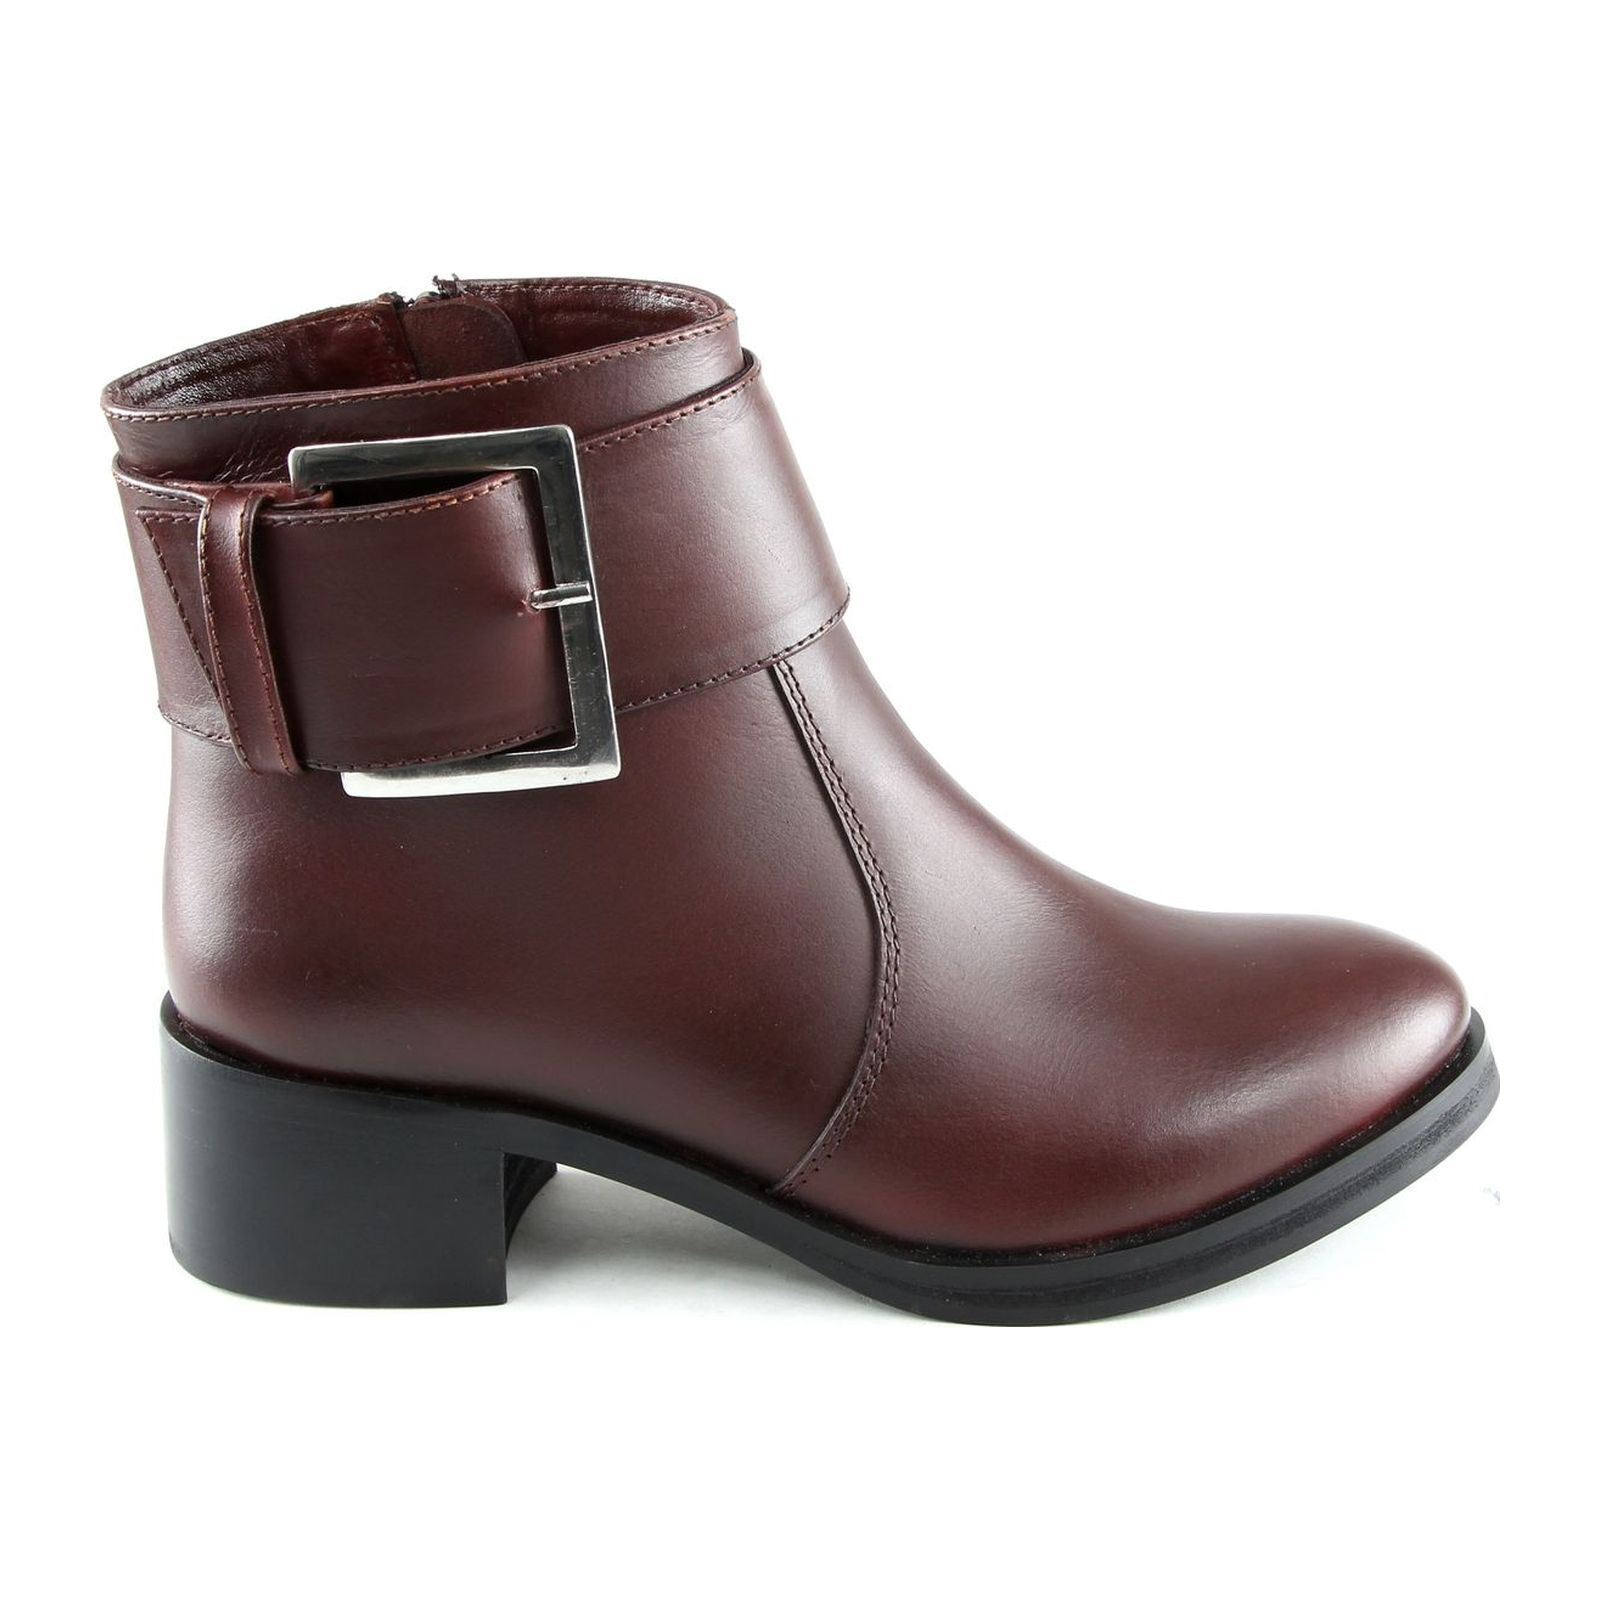 Manoukian Lola - Bottines en cuir - bordeaux